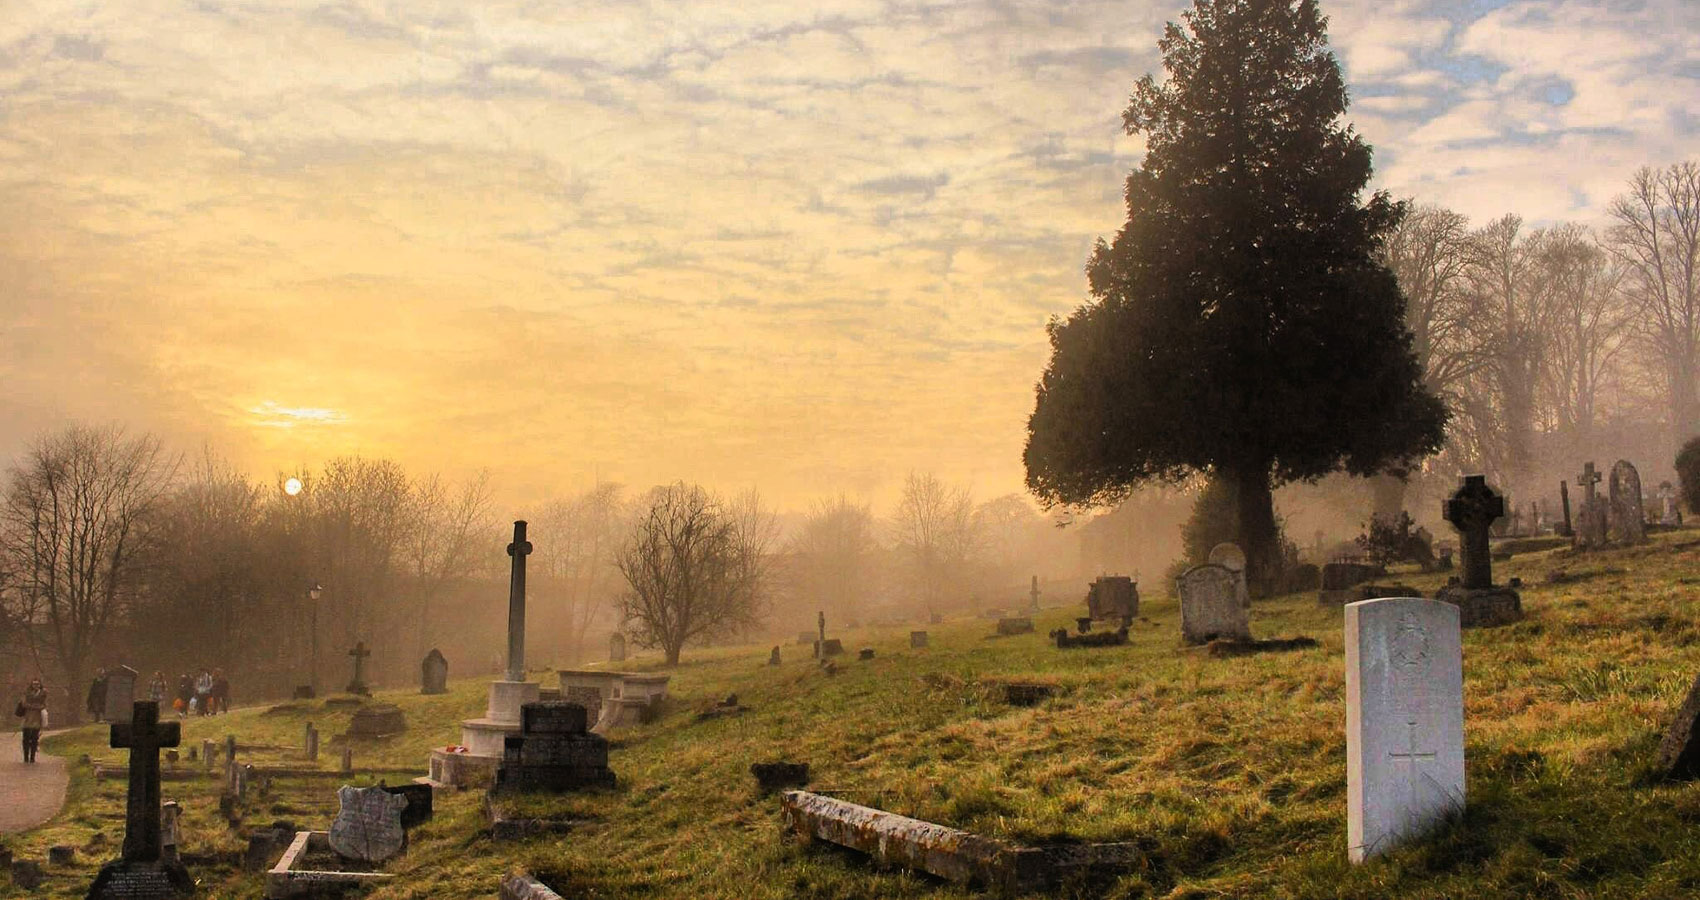 The Graveyard, a poem written by Julian Lee at Spillwords.com